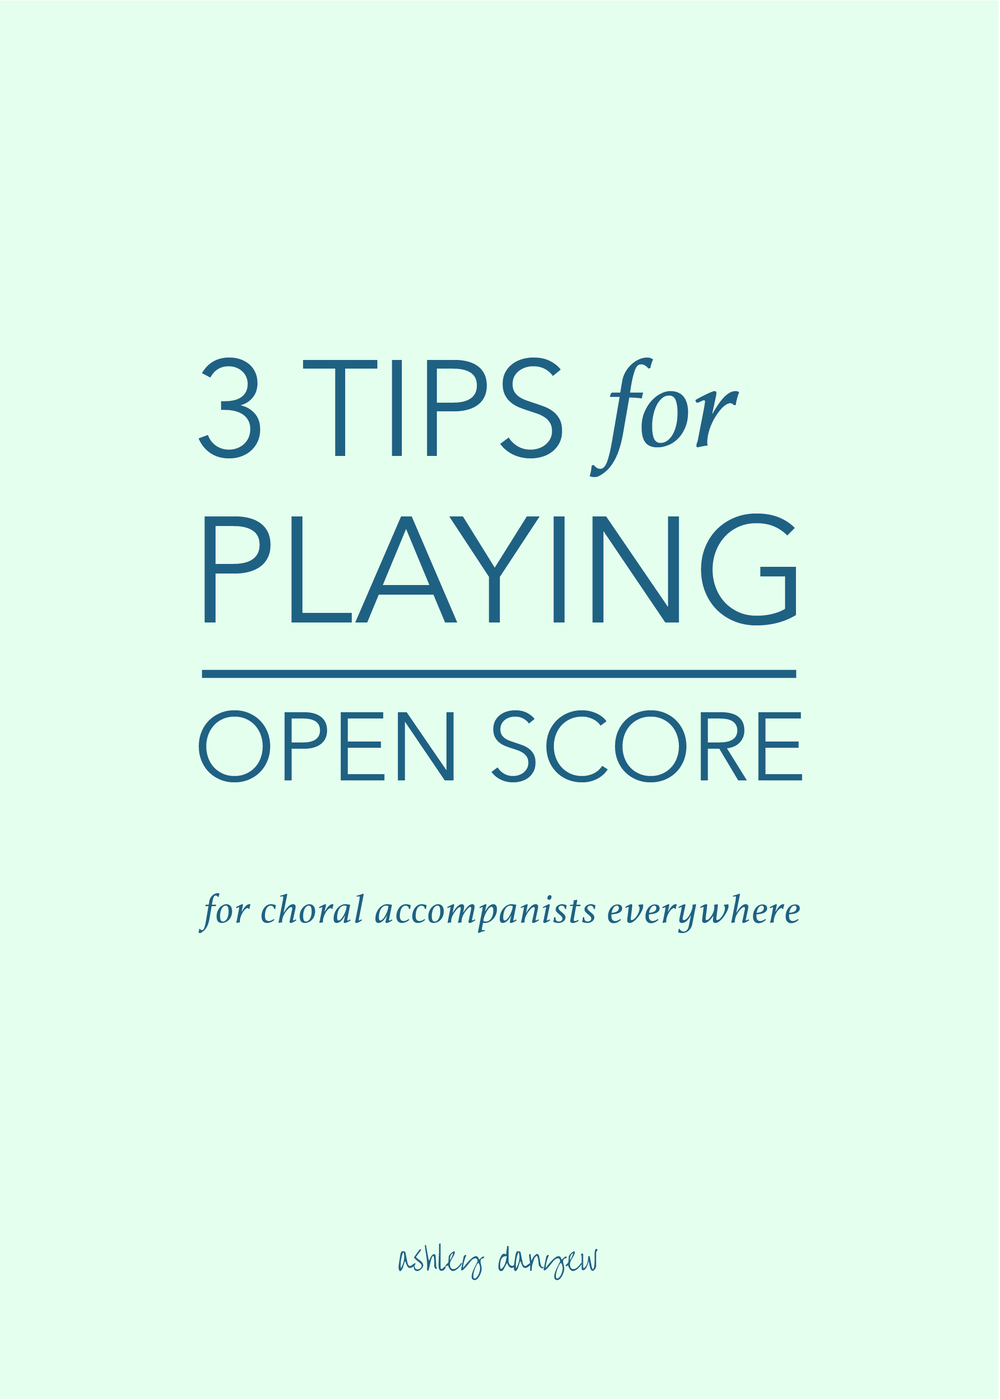 Copy of 3 Tips for Playing Open Score (for Choral Accompanists Everywhere)